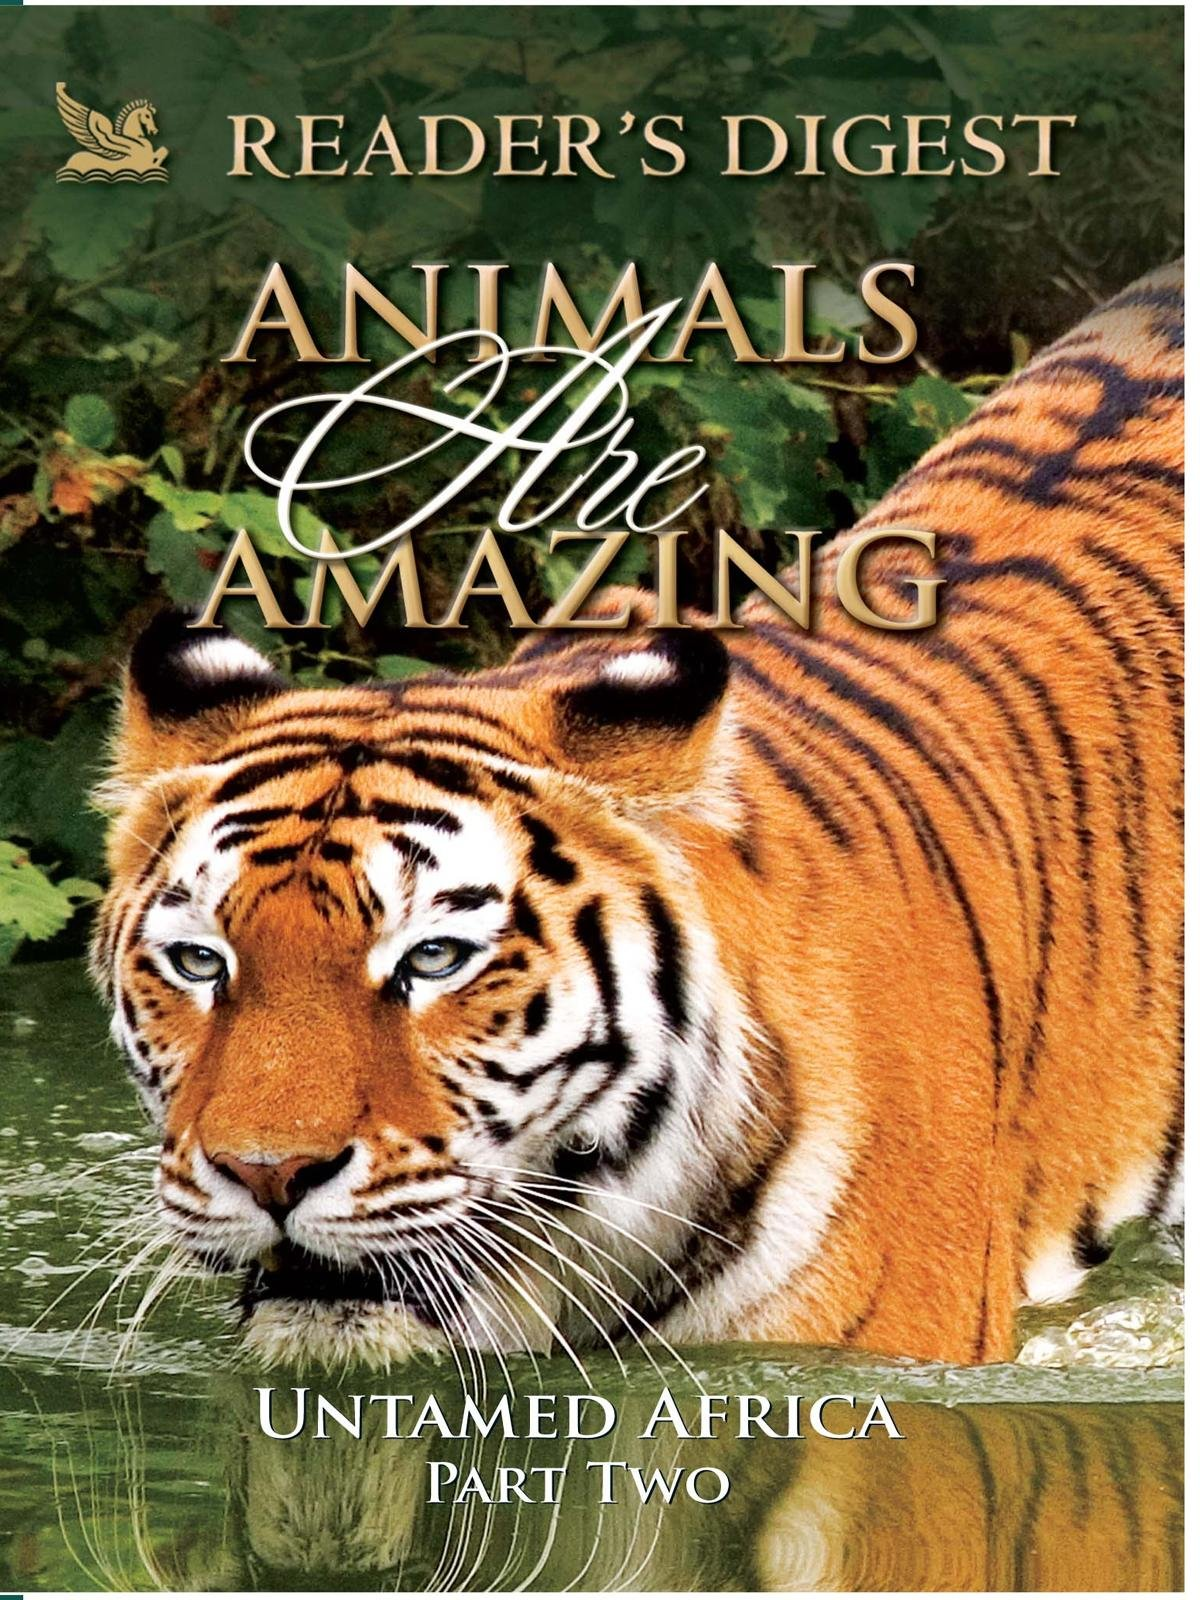 Amazon.com: Animals Are Amazing: Untame Africa: Part Two: Reader's Digest,  Reader's Digest